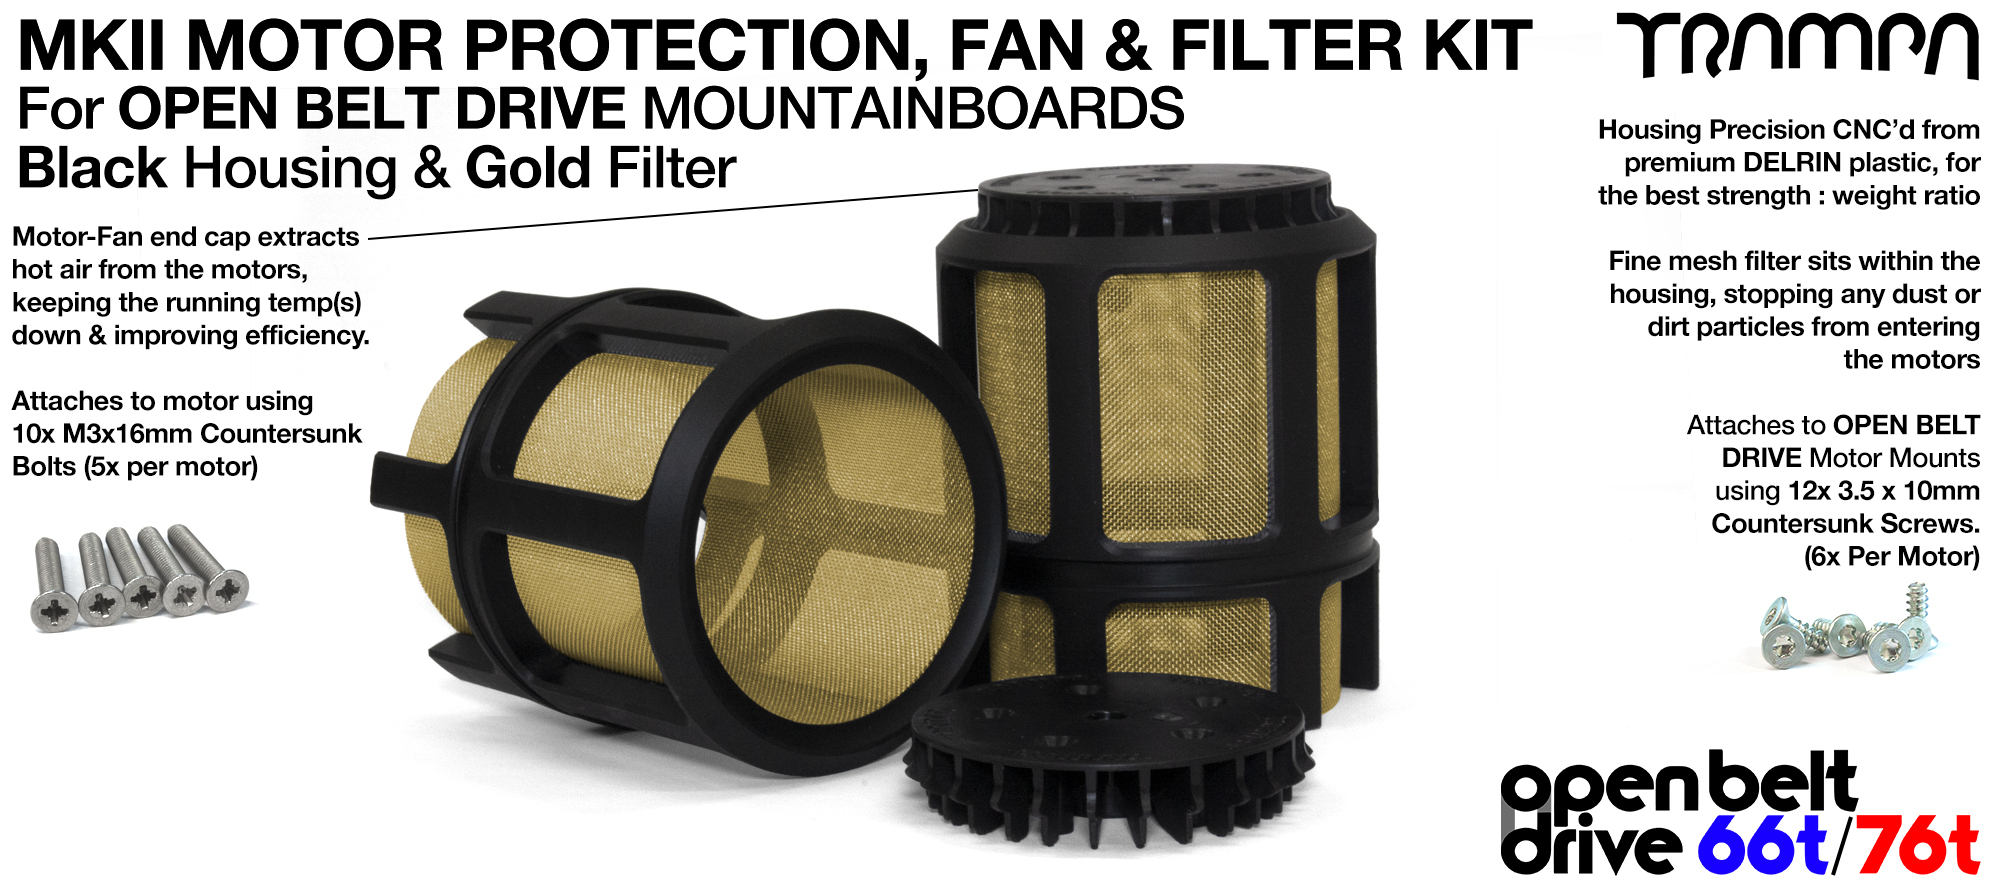 2x OBD MKII Motor protection Sleeve BLACK with GOLD Filter